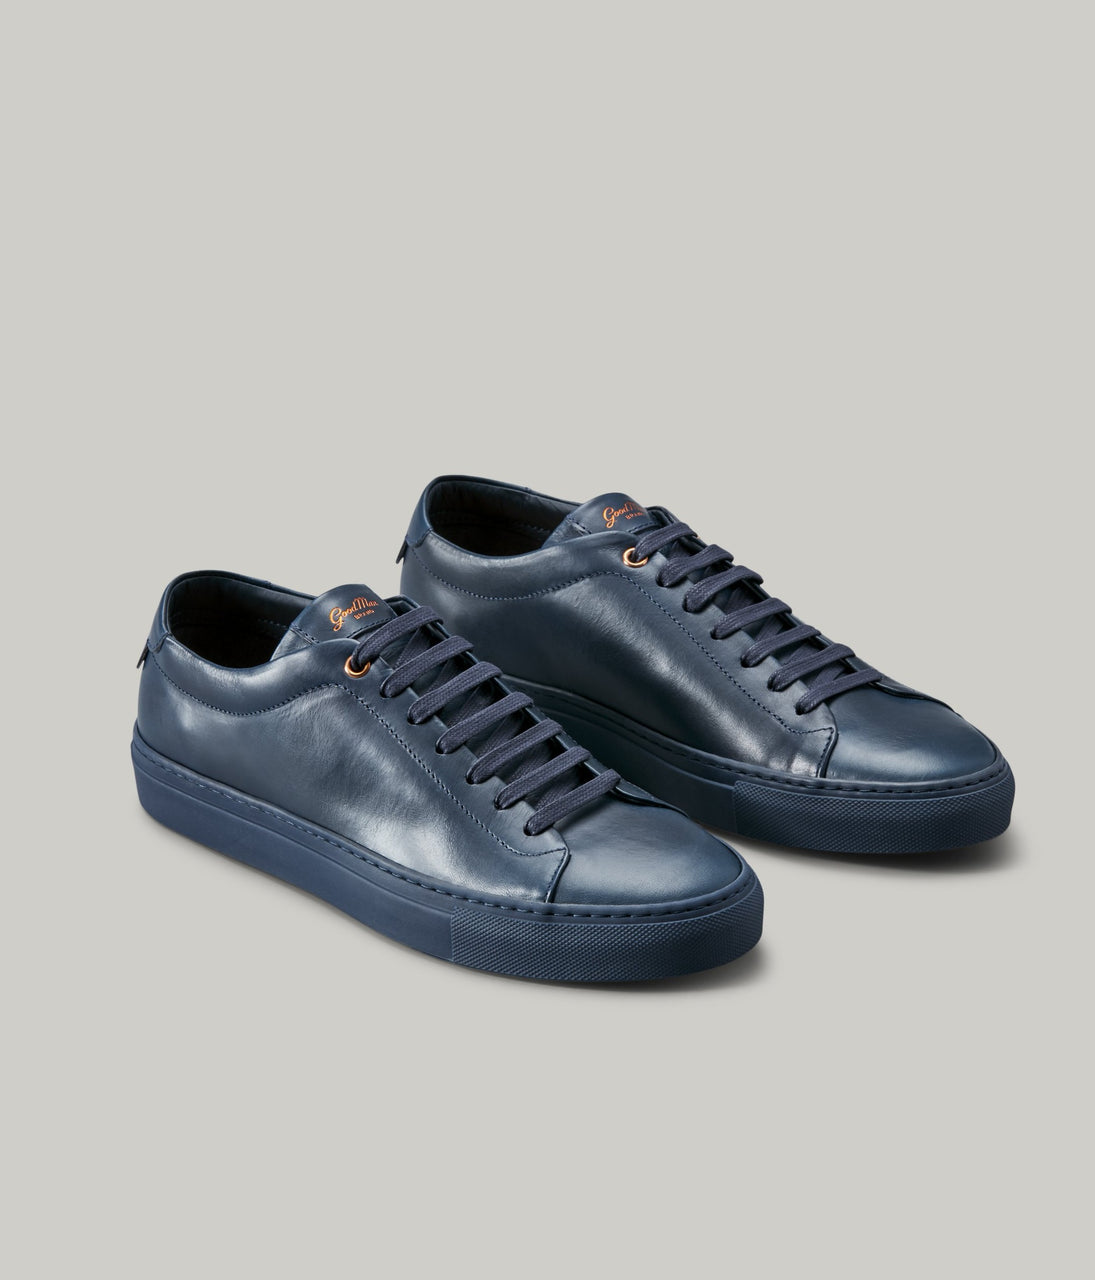 Edge Lo-Top Sneaker - Navy - Good Man Brand - Edge Lo-Top Sneaker - Navy